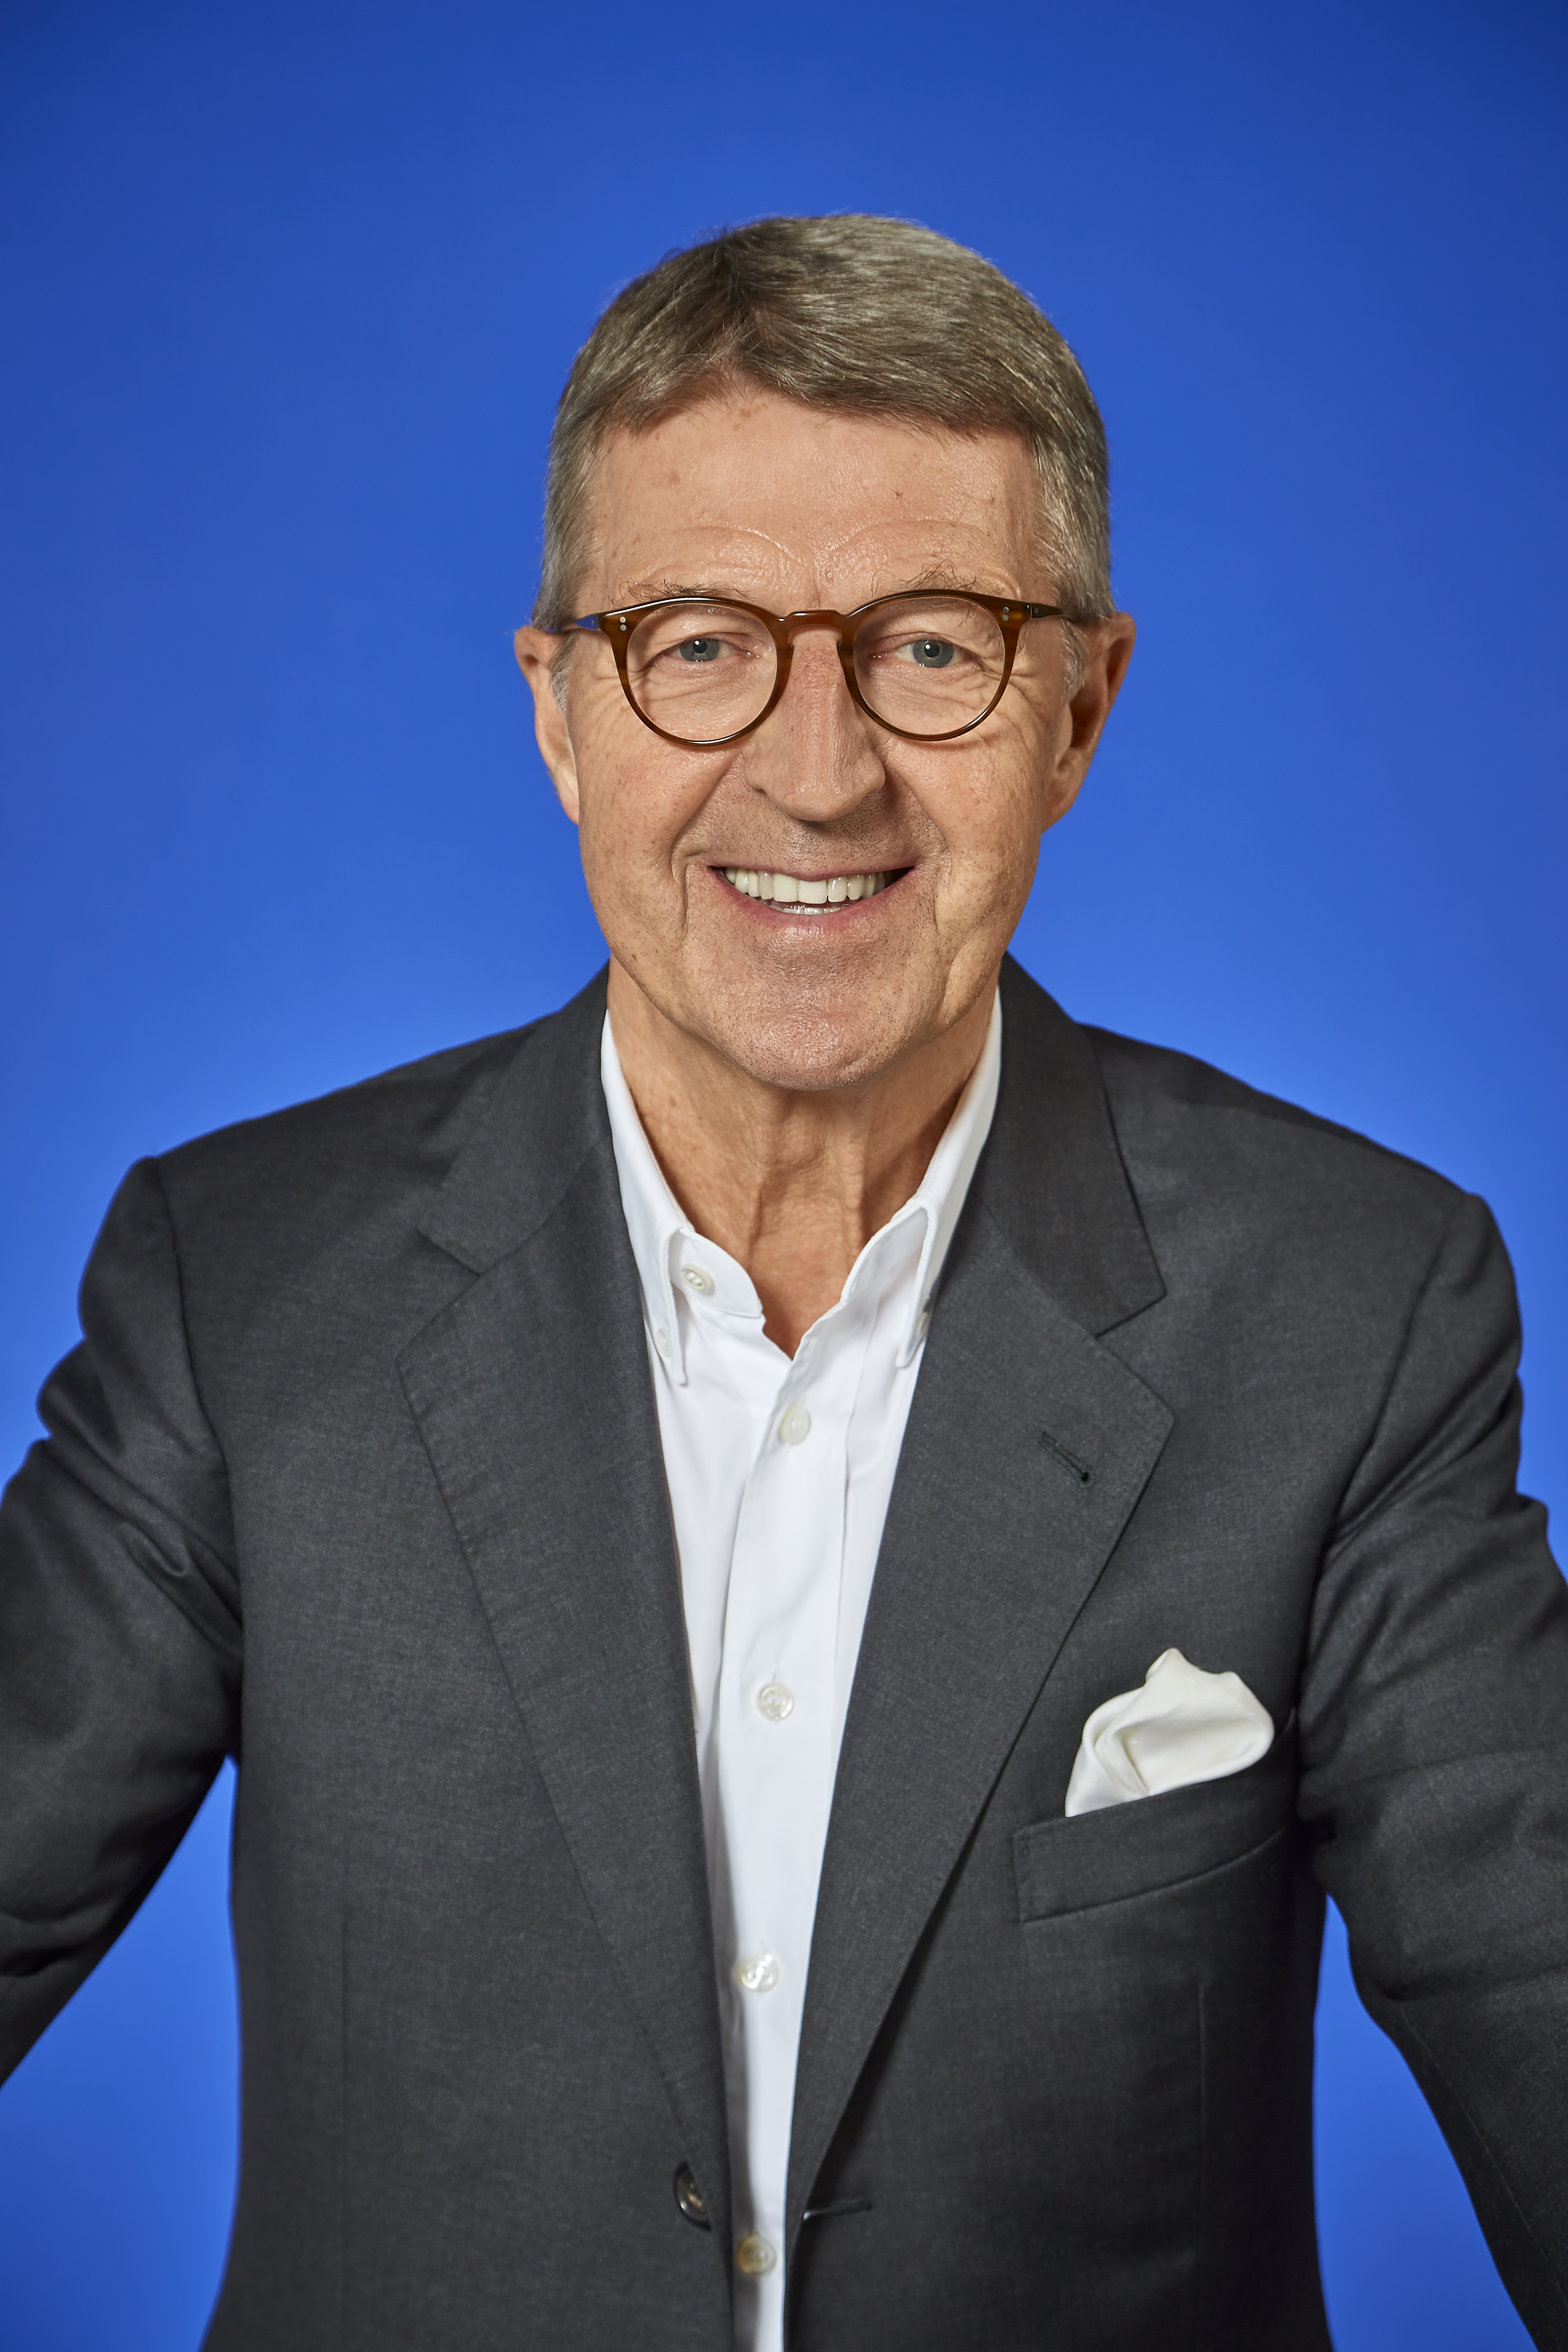 Dr. Eckhard Cordes, Chairman of the Supervisory Board, Bilfinger SE